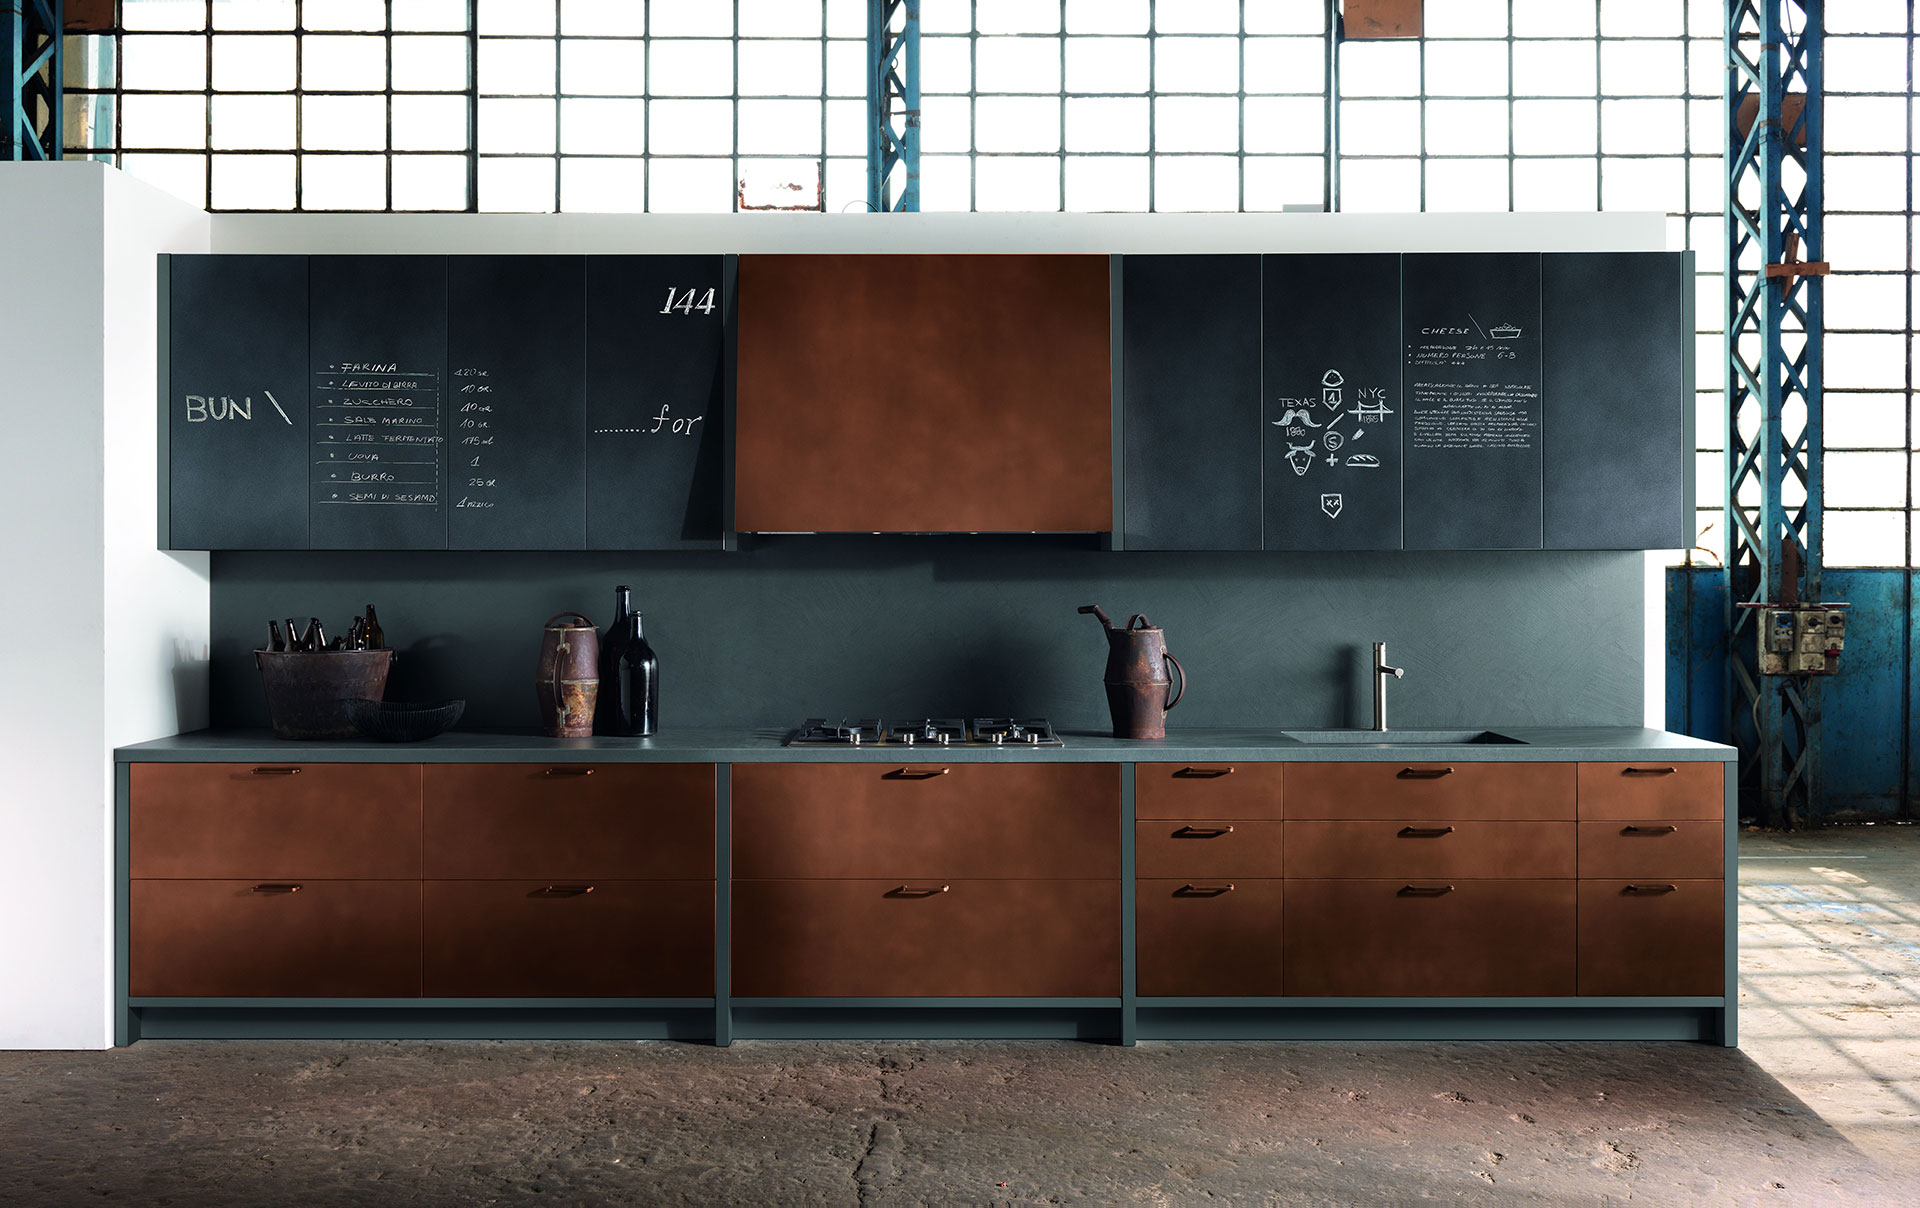 Factory by Aster Cucine - Habitat by Aeon